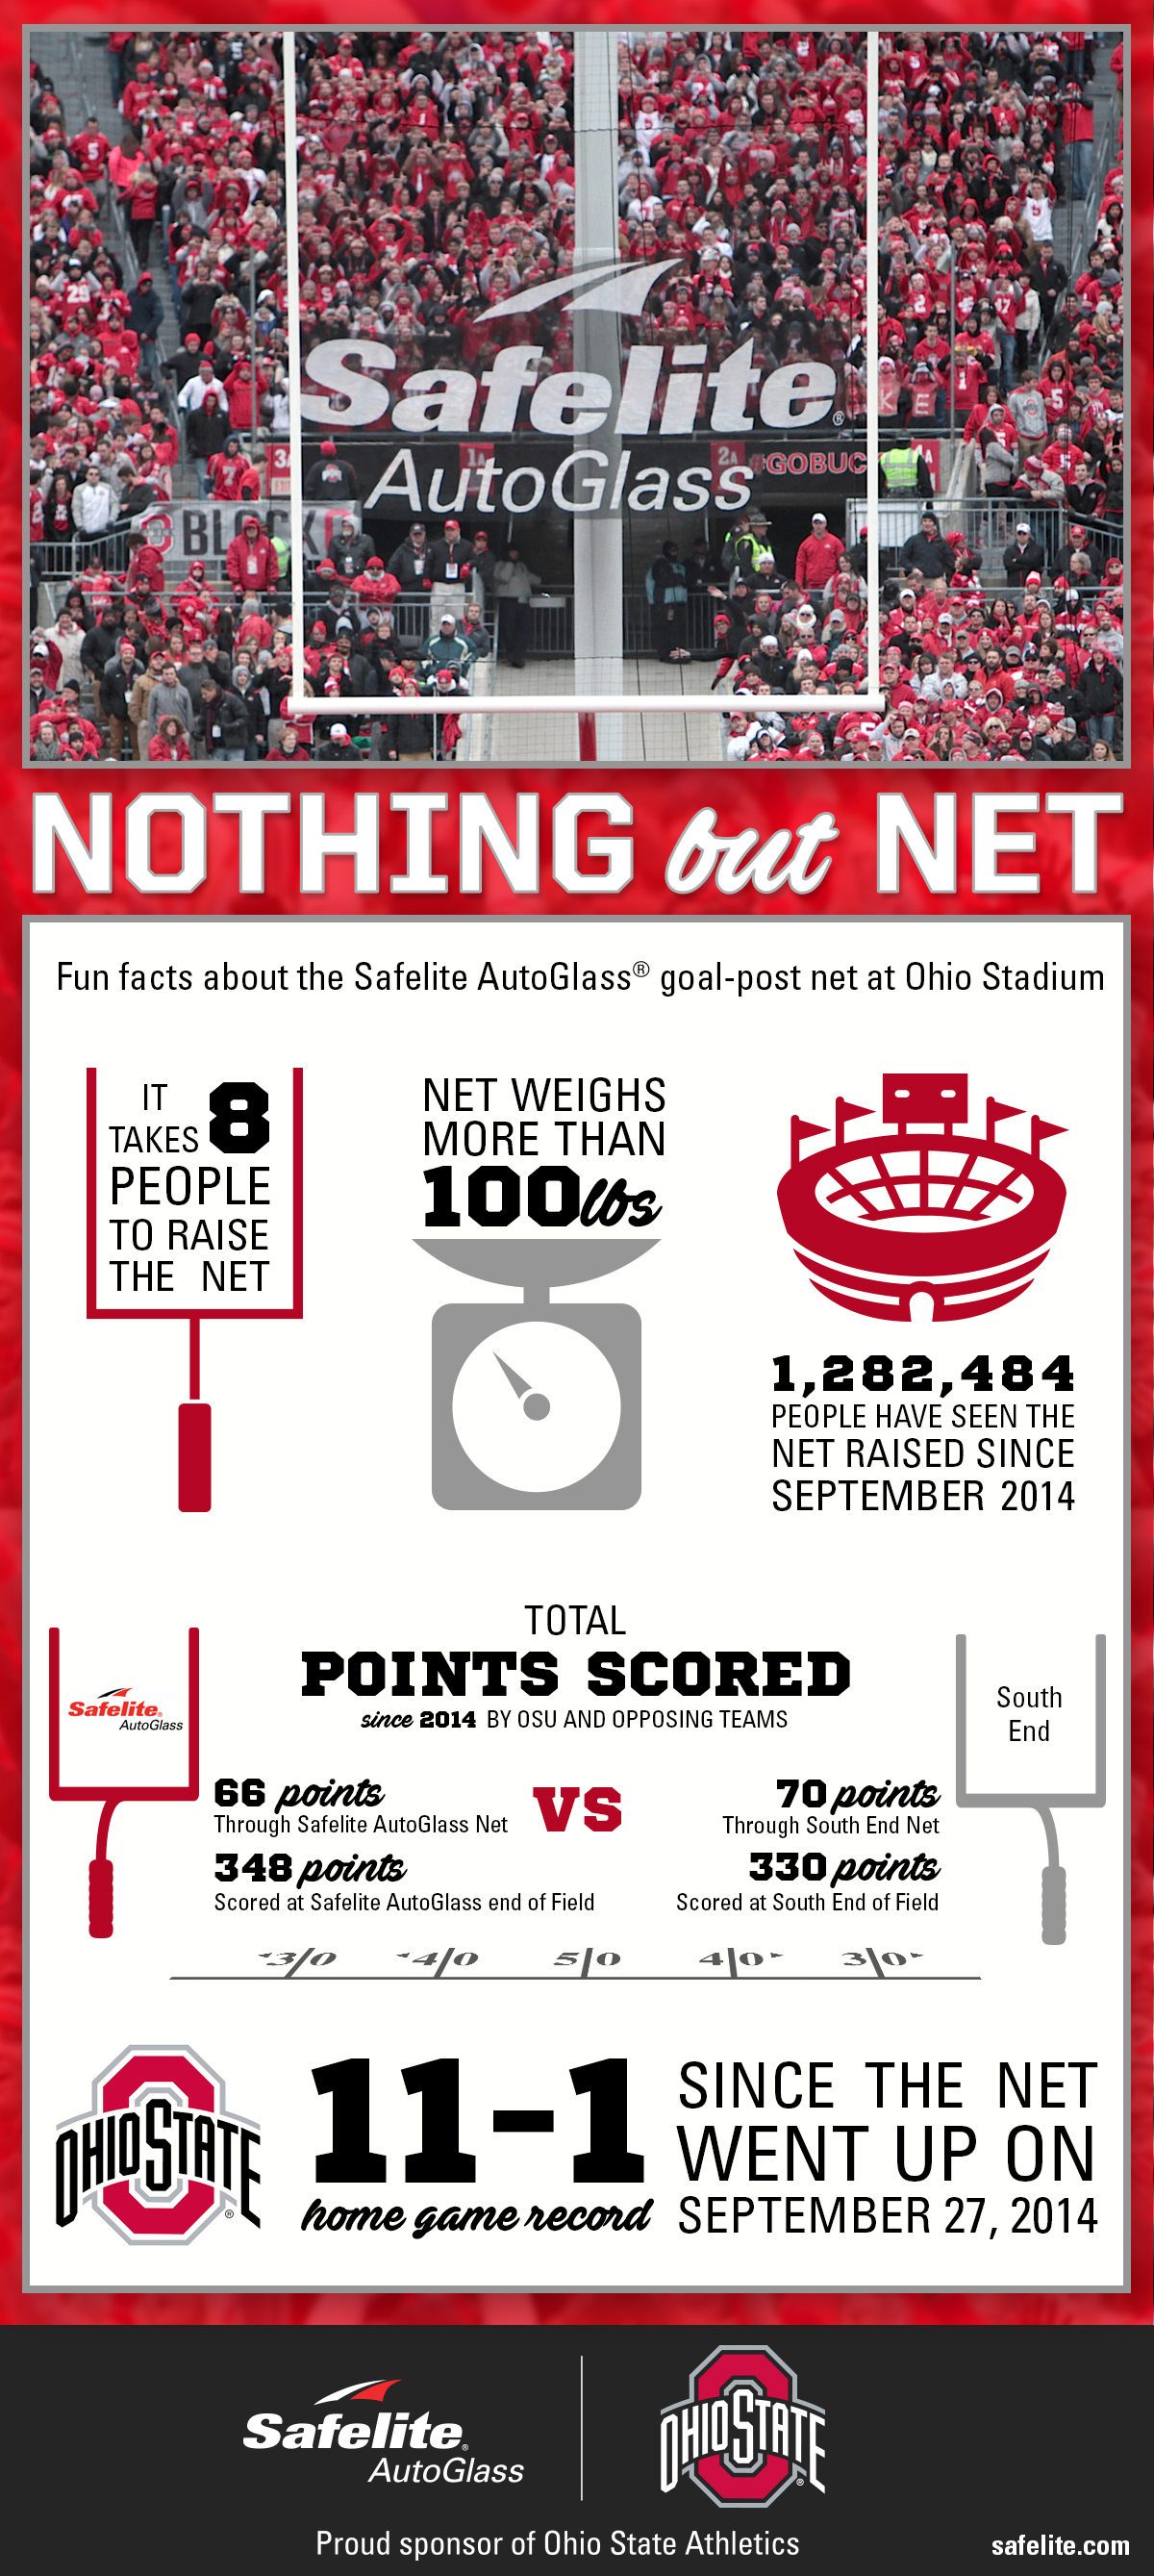 Safelite is a proud sponsor of Ohio State Athletics. Did you know these fun facts about their field goal net at Ohio Stadium?